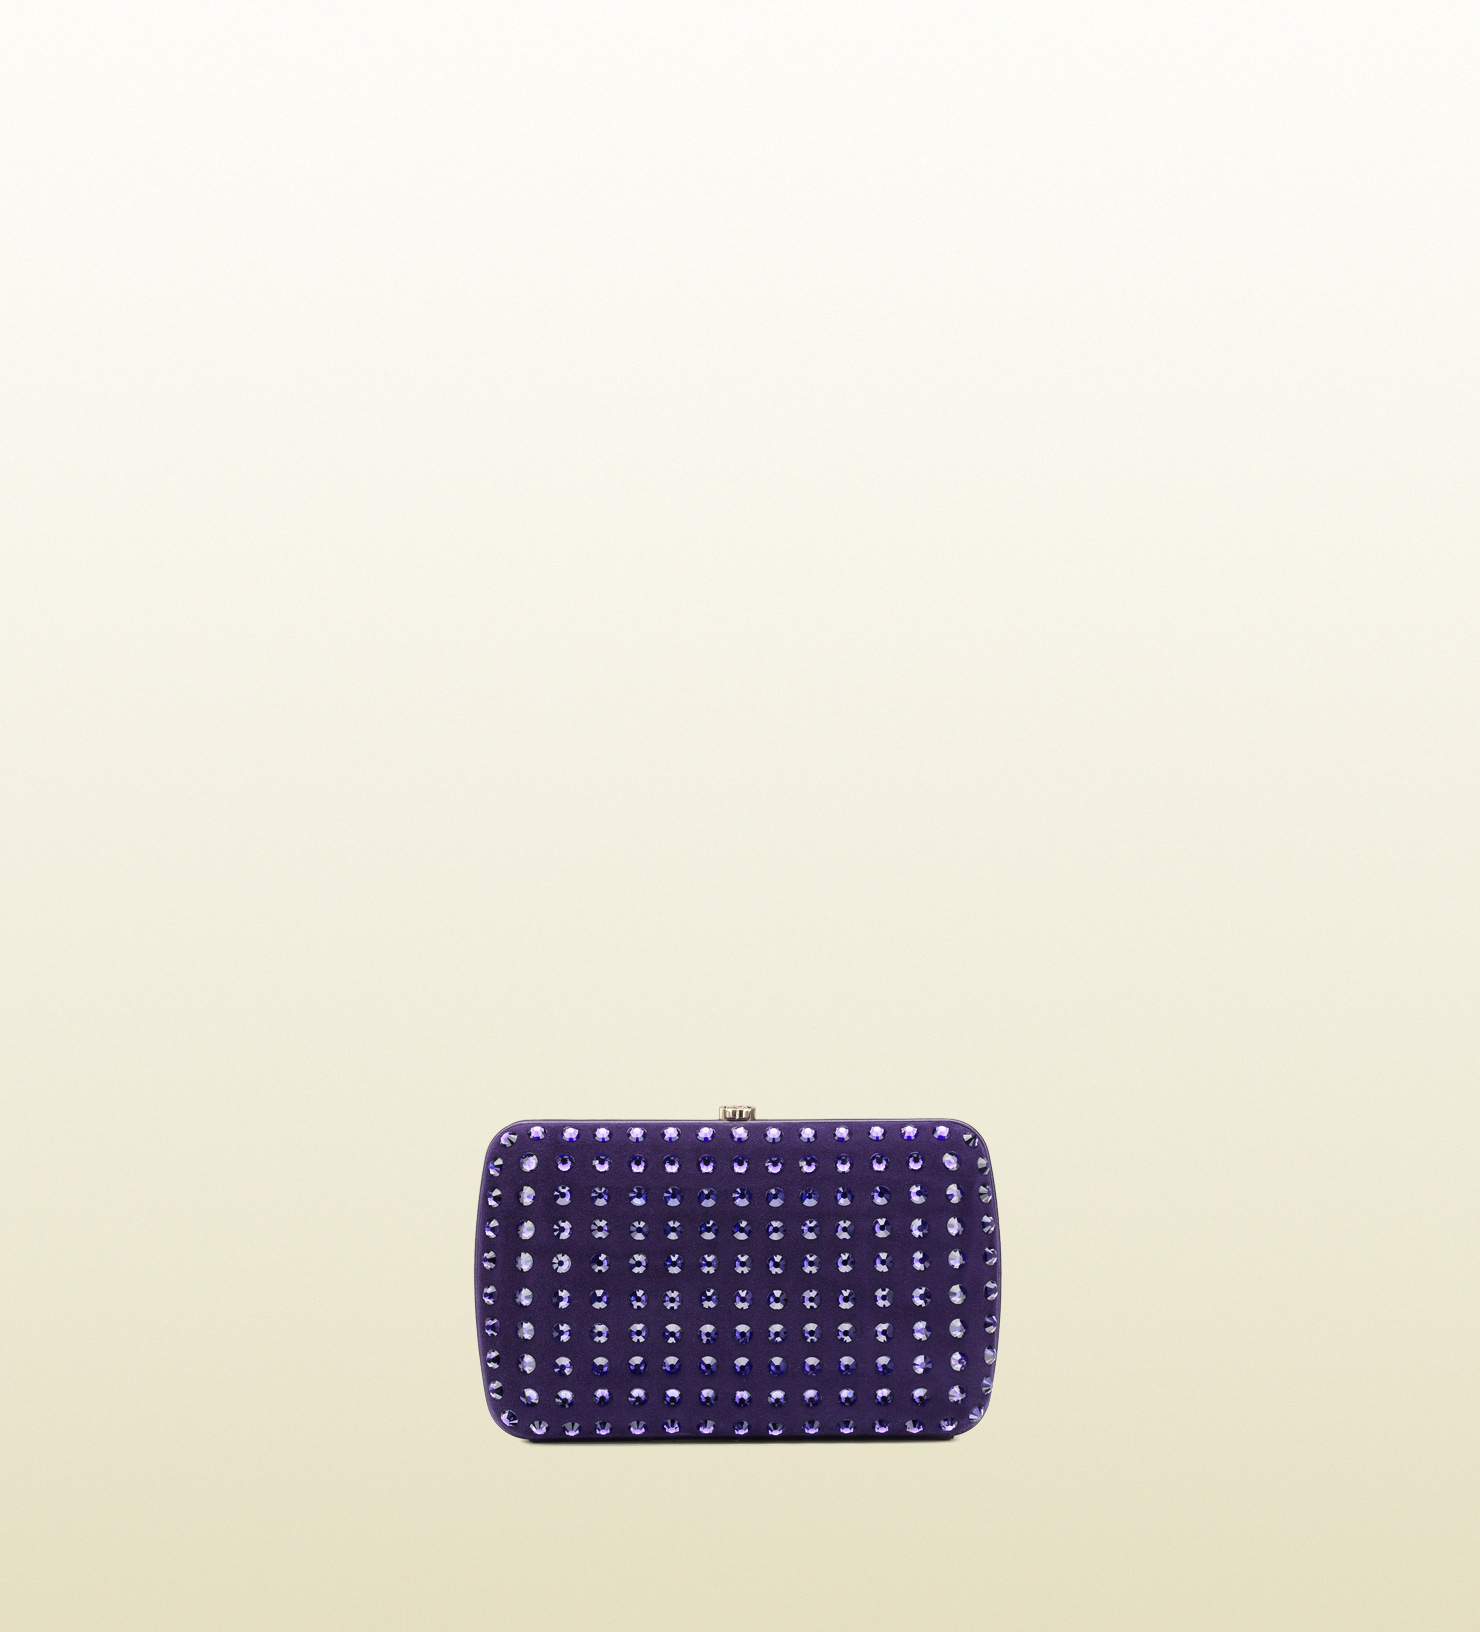 acb047bca47f30 Gucci Broadway Suede Evening Clutch with Crystal Studs in Purple - Lyst